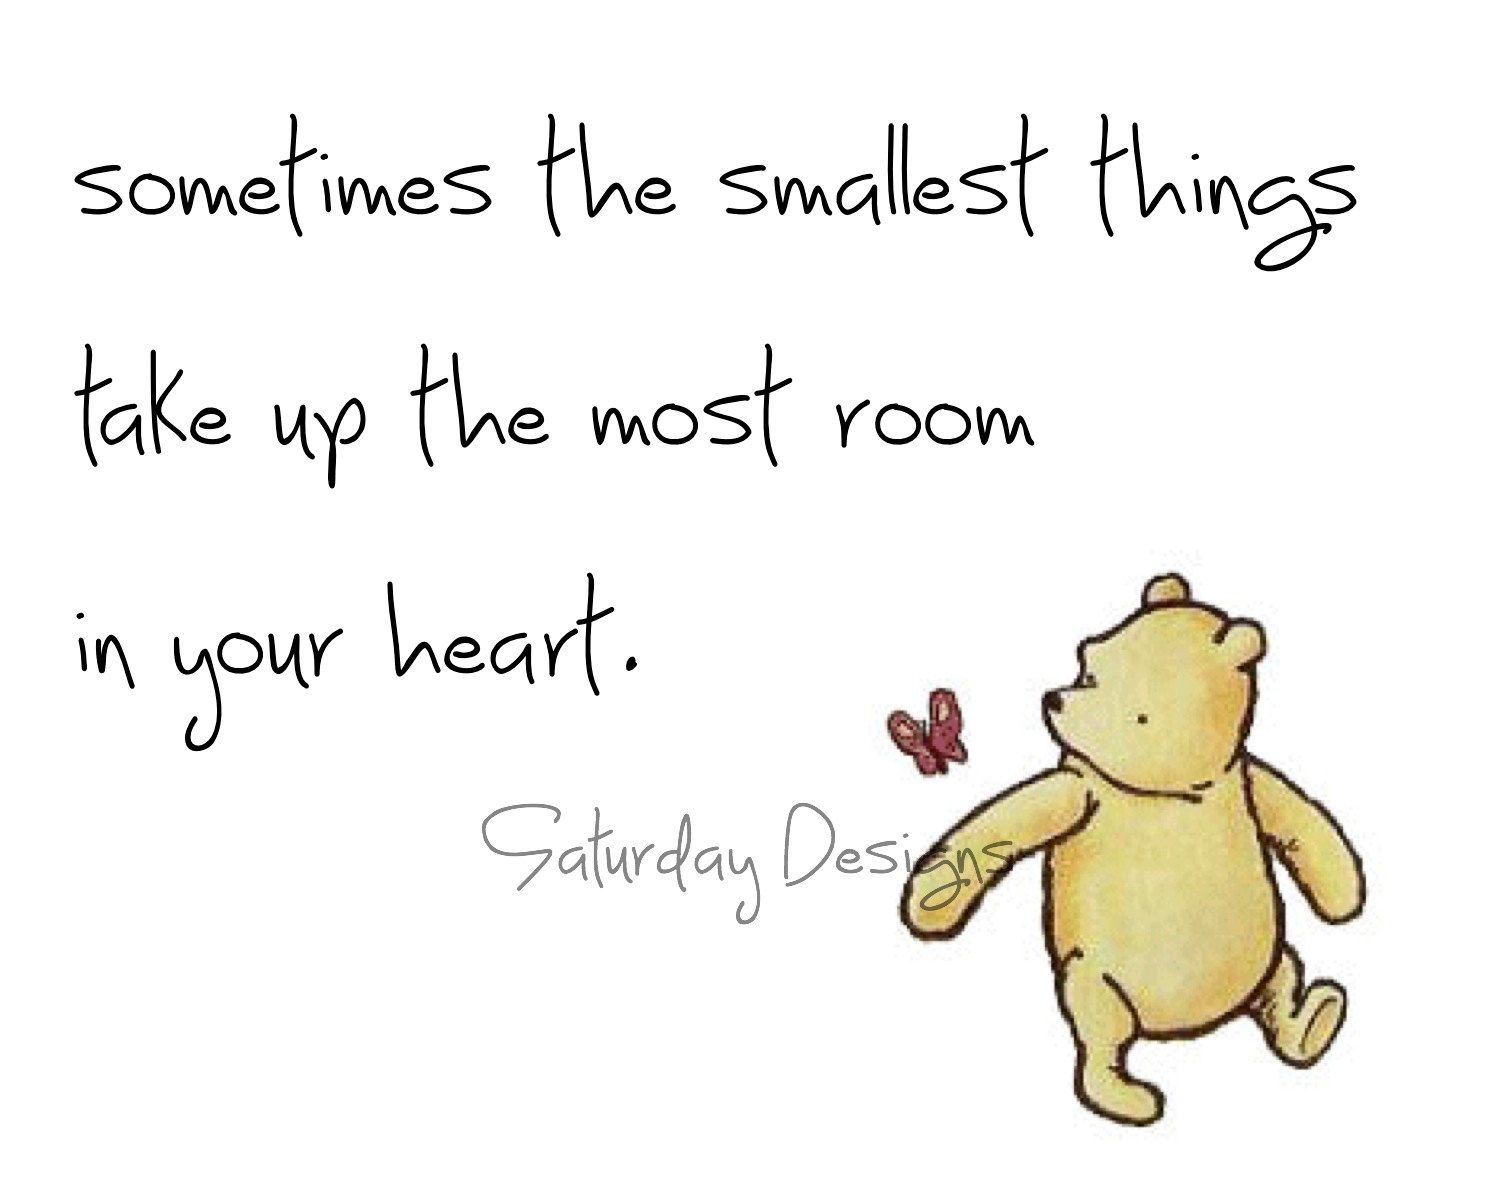 Pooh Love Quotes Classic Winnie The Pooh Quotes  Set Of 4 Digital 4X6 Prints